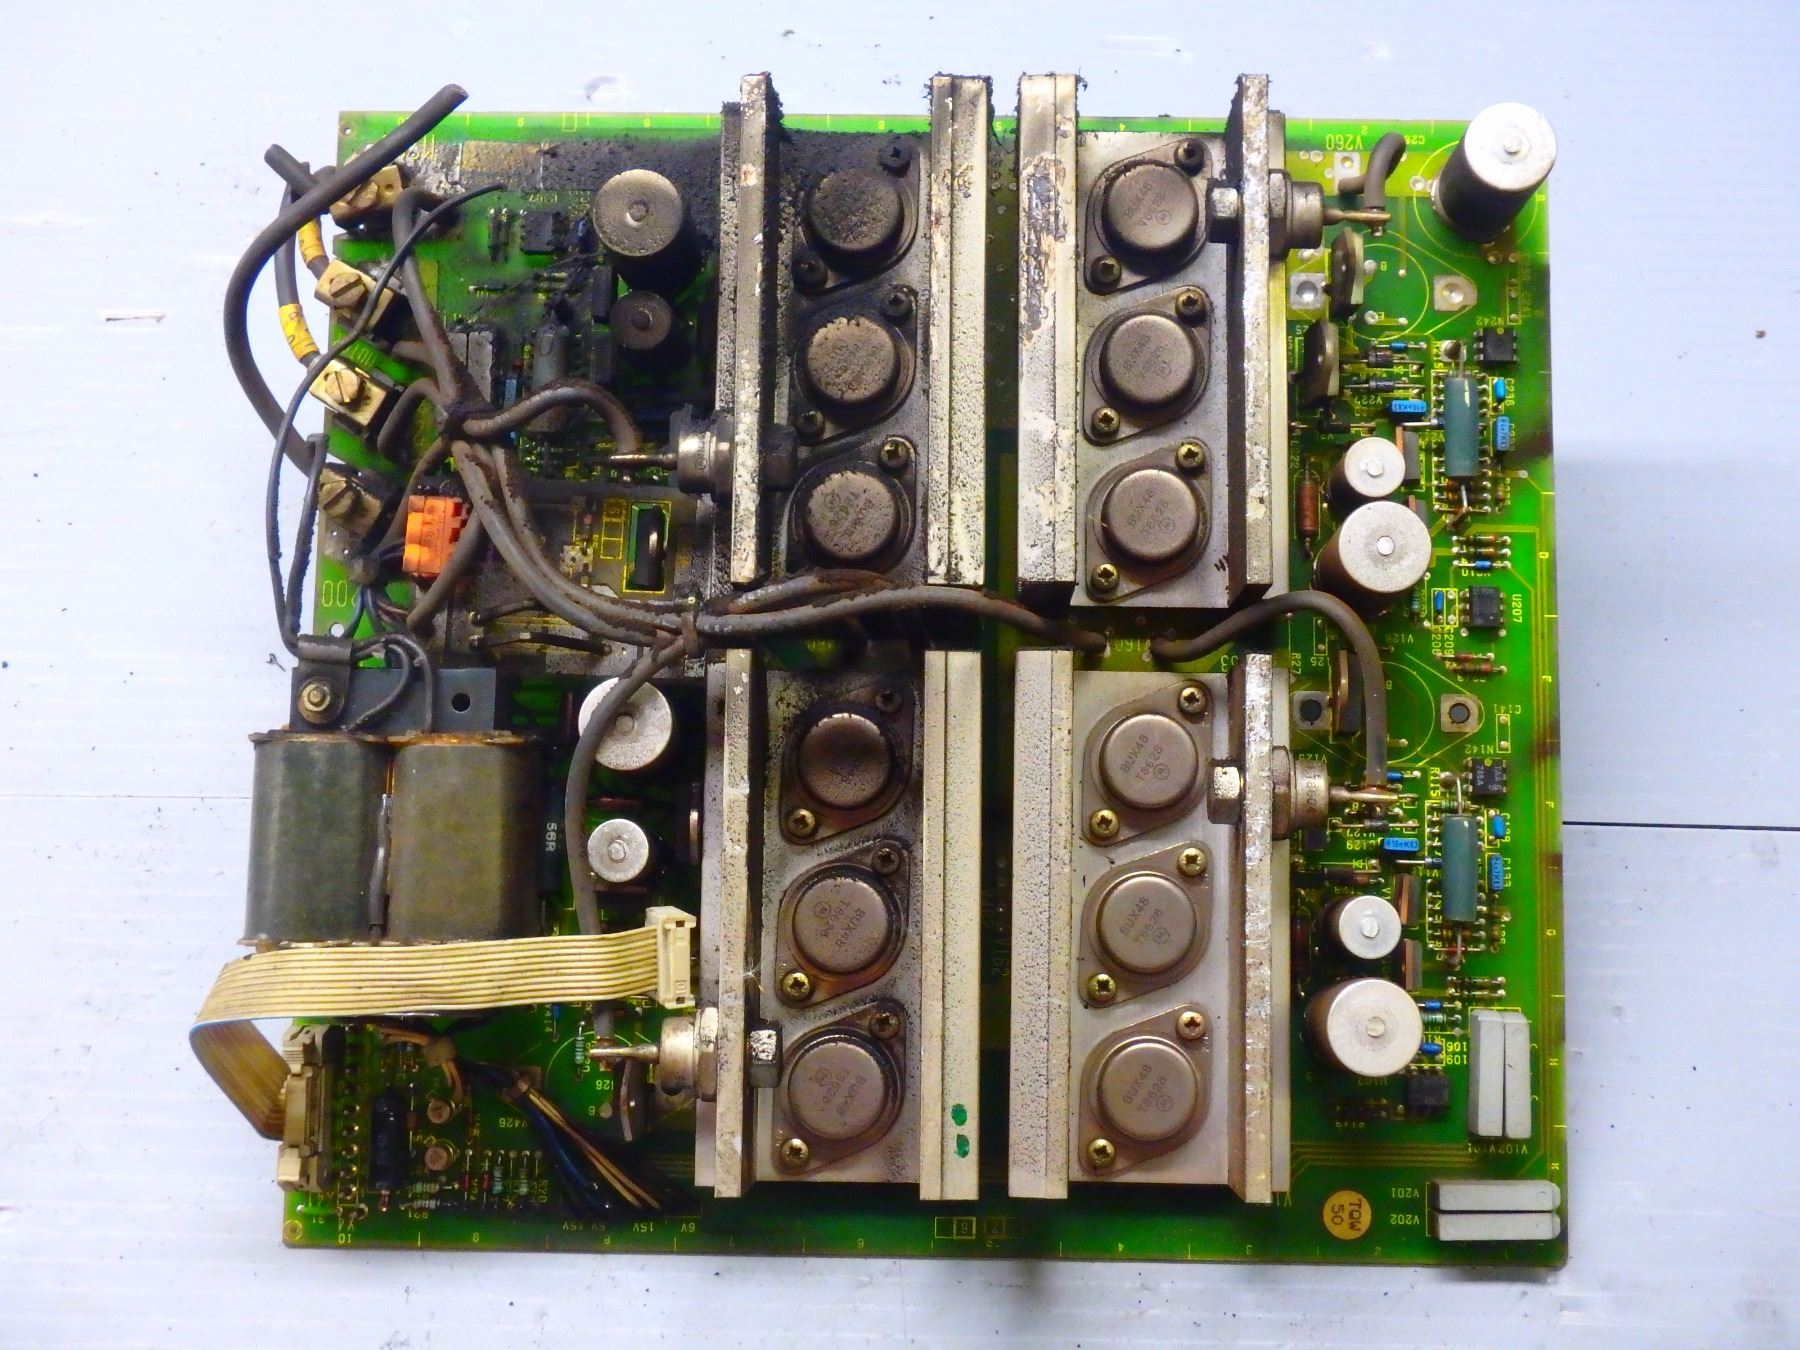 SIE 6RB2025-0FA01 CIRCUIT BOARD- *** TAG HARD TO READ!! on